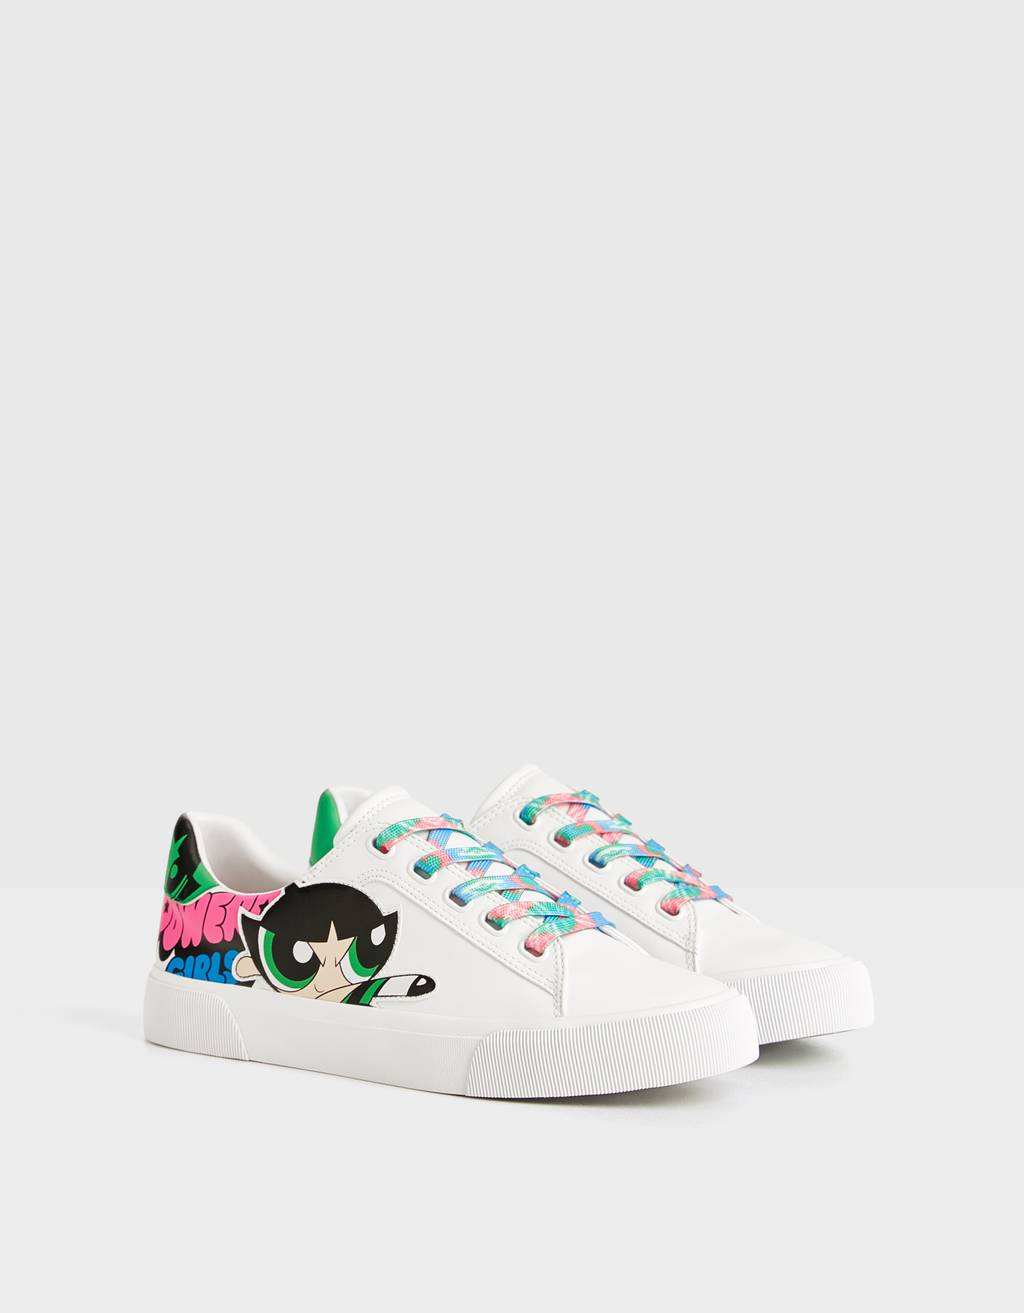 The Powerpuff Girls x Bershka trainers